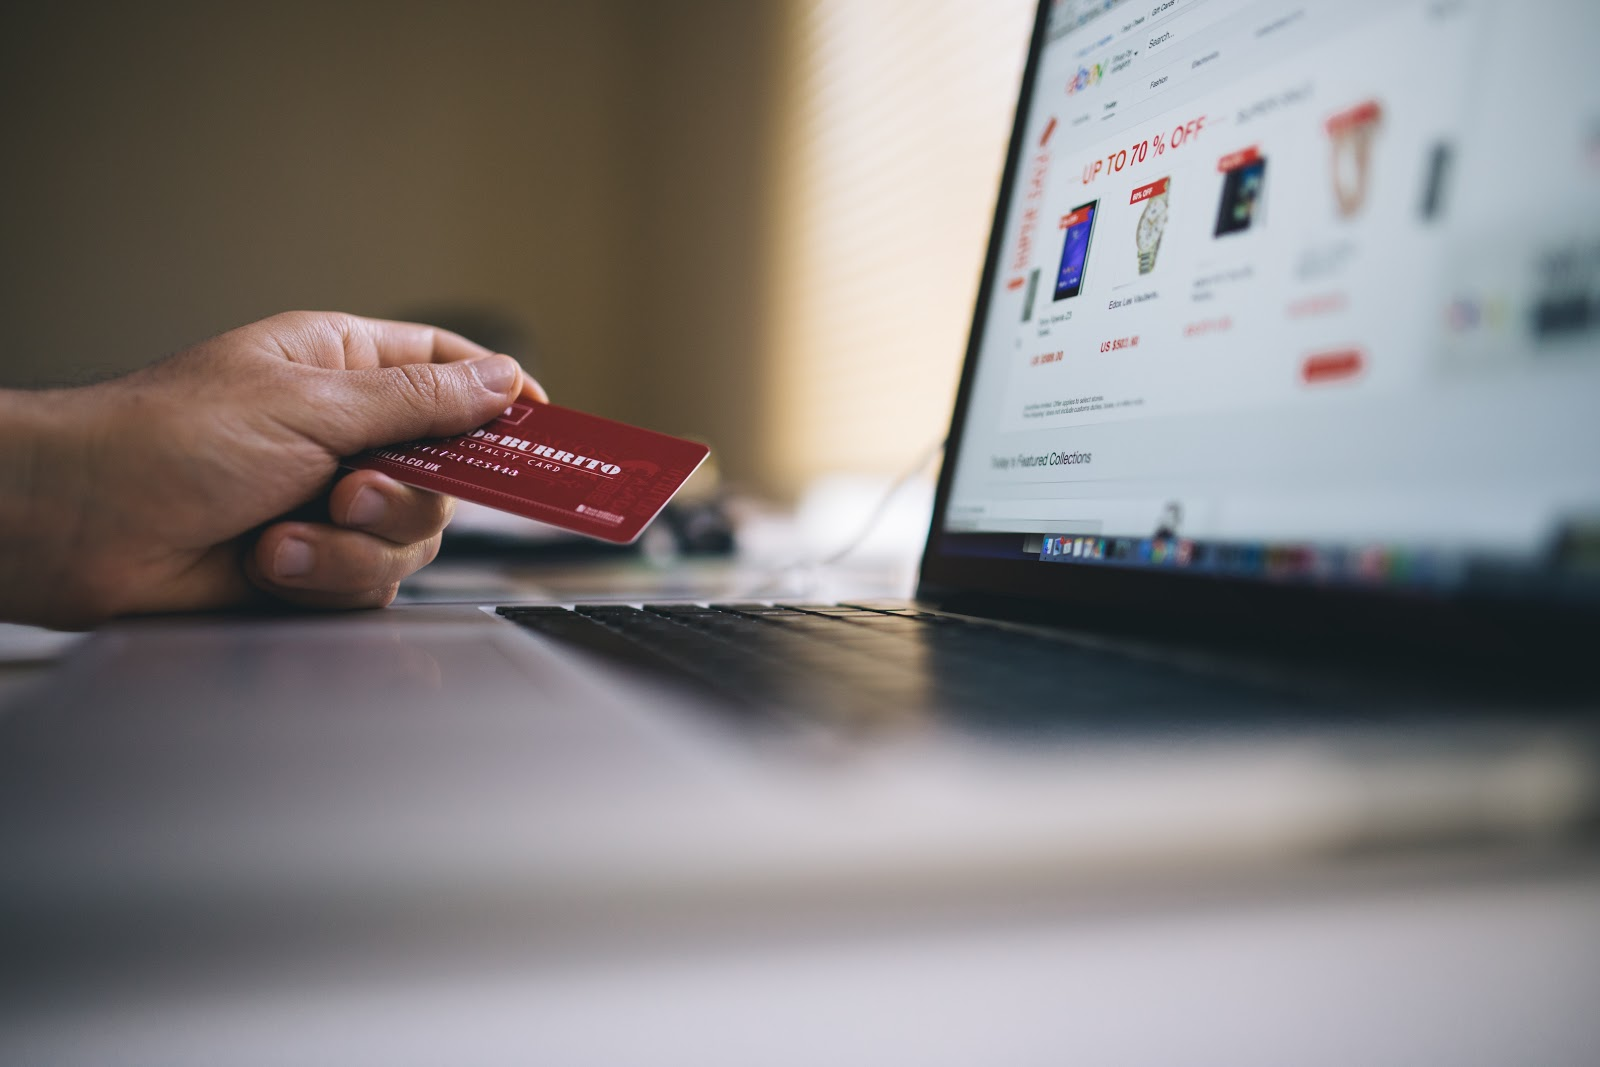 Pay by online - Image credit: pexels.com